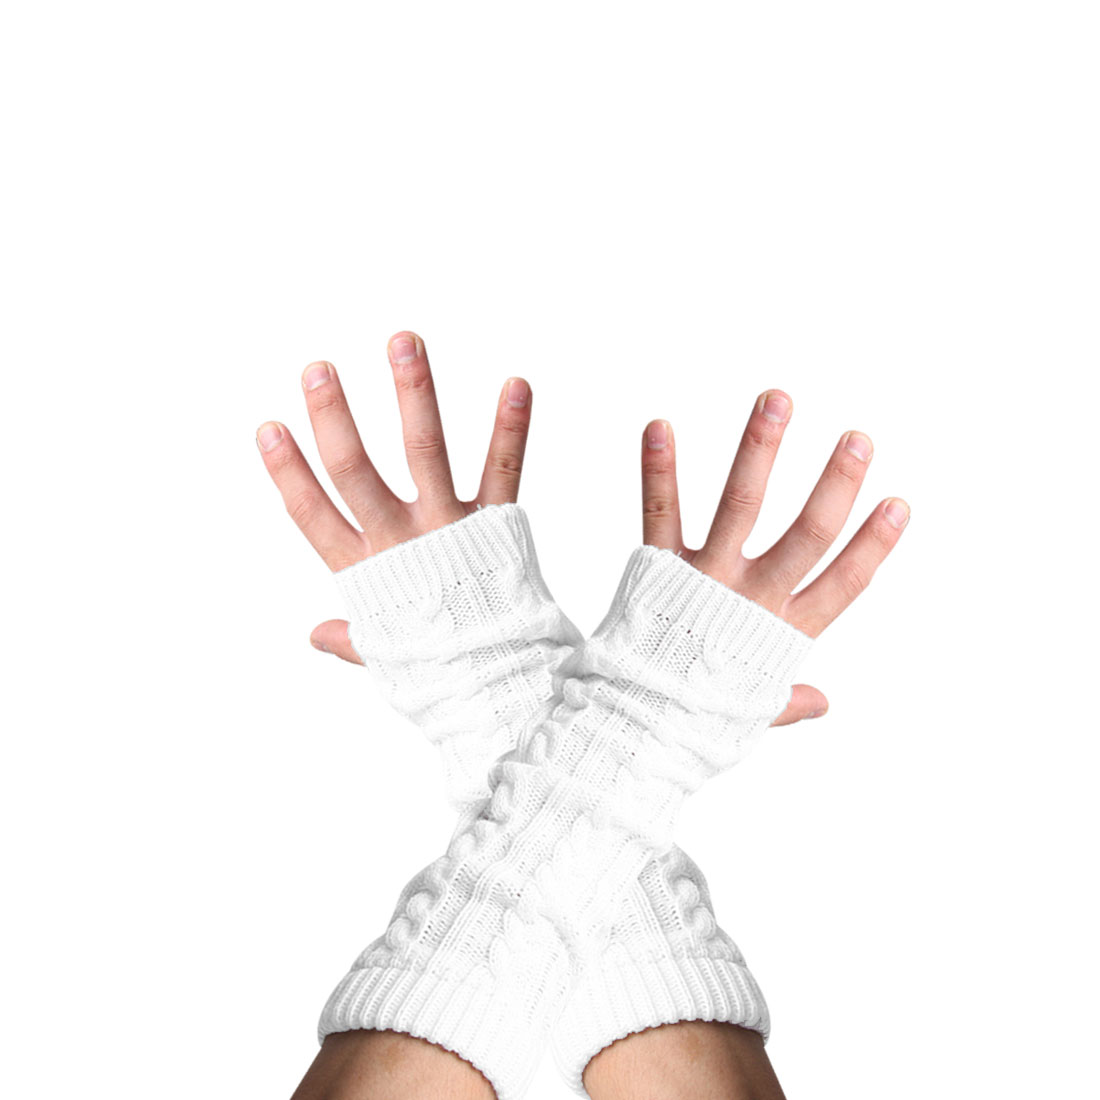 Unisex White Pair Fingerless Knitted Winter Warmers Long Gloves